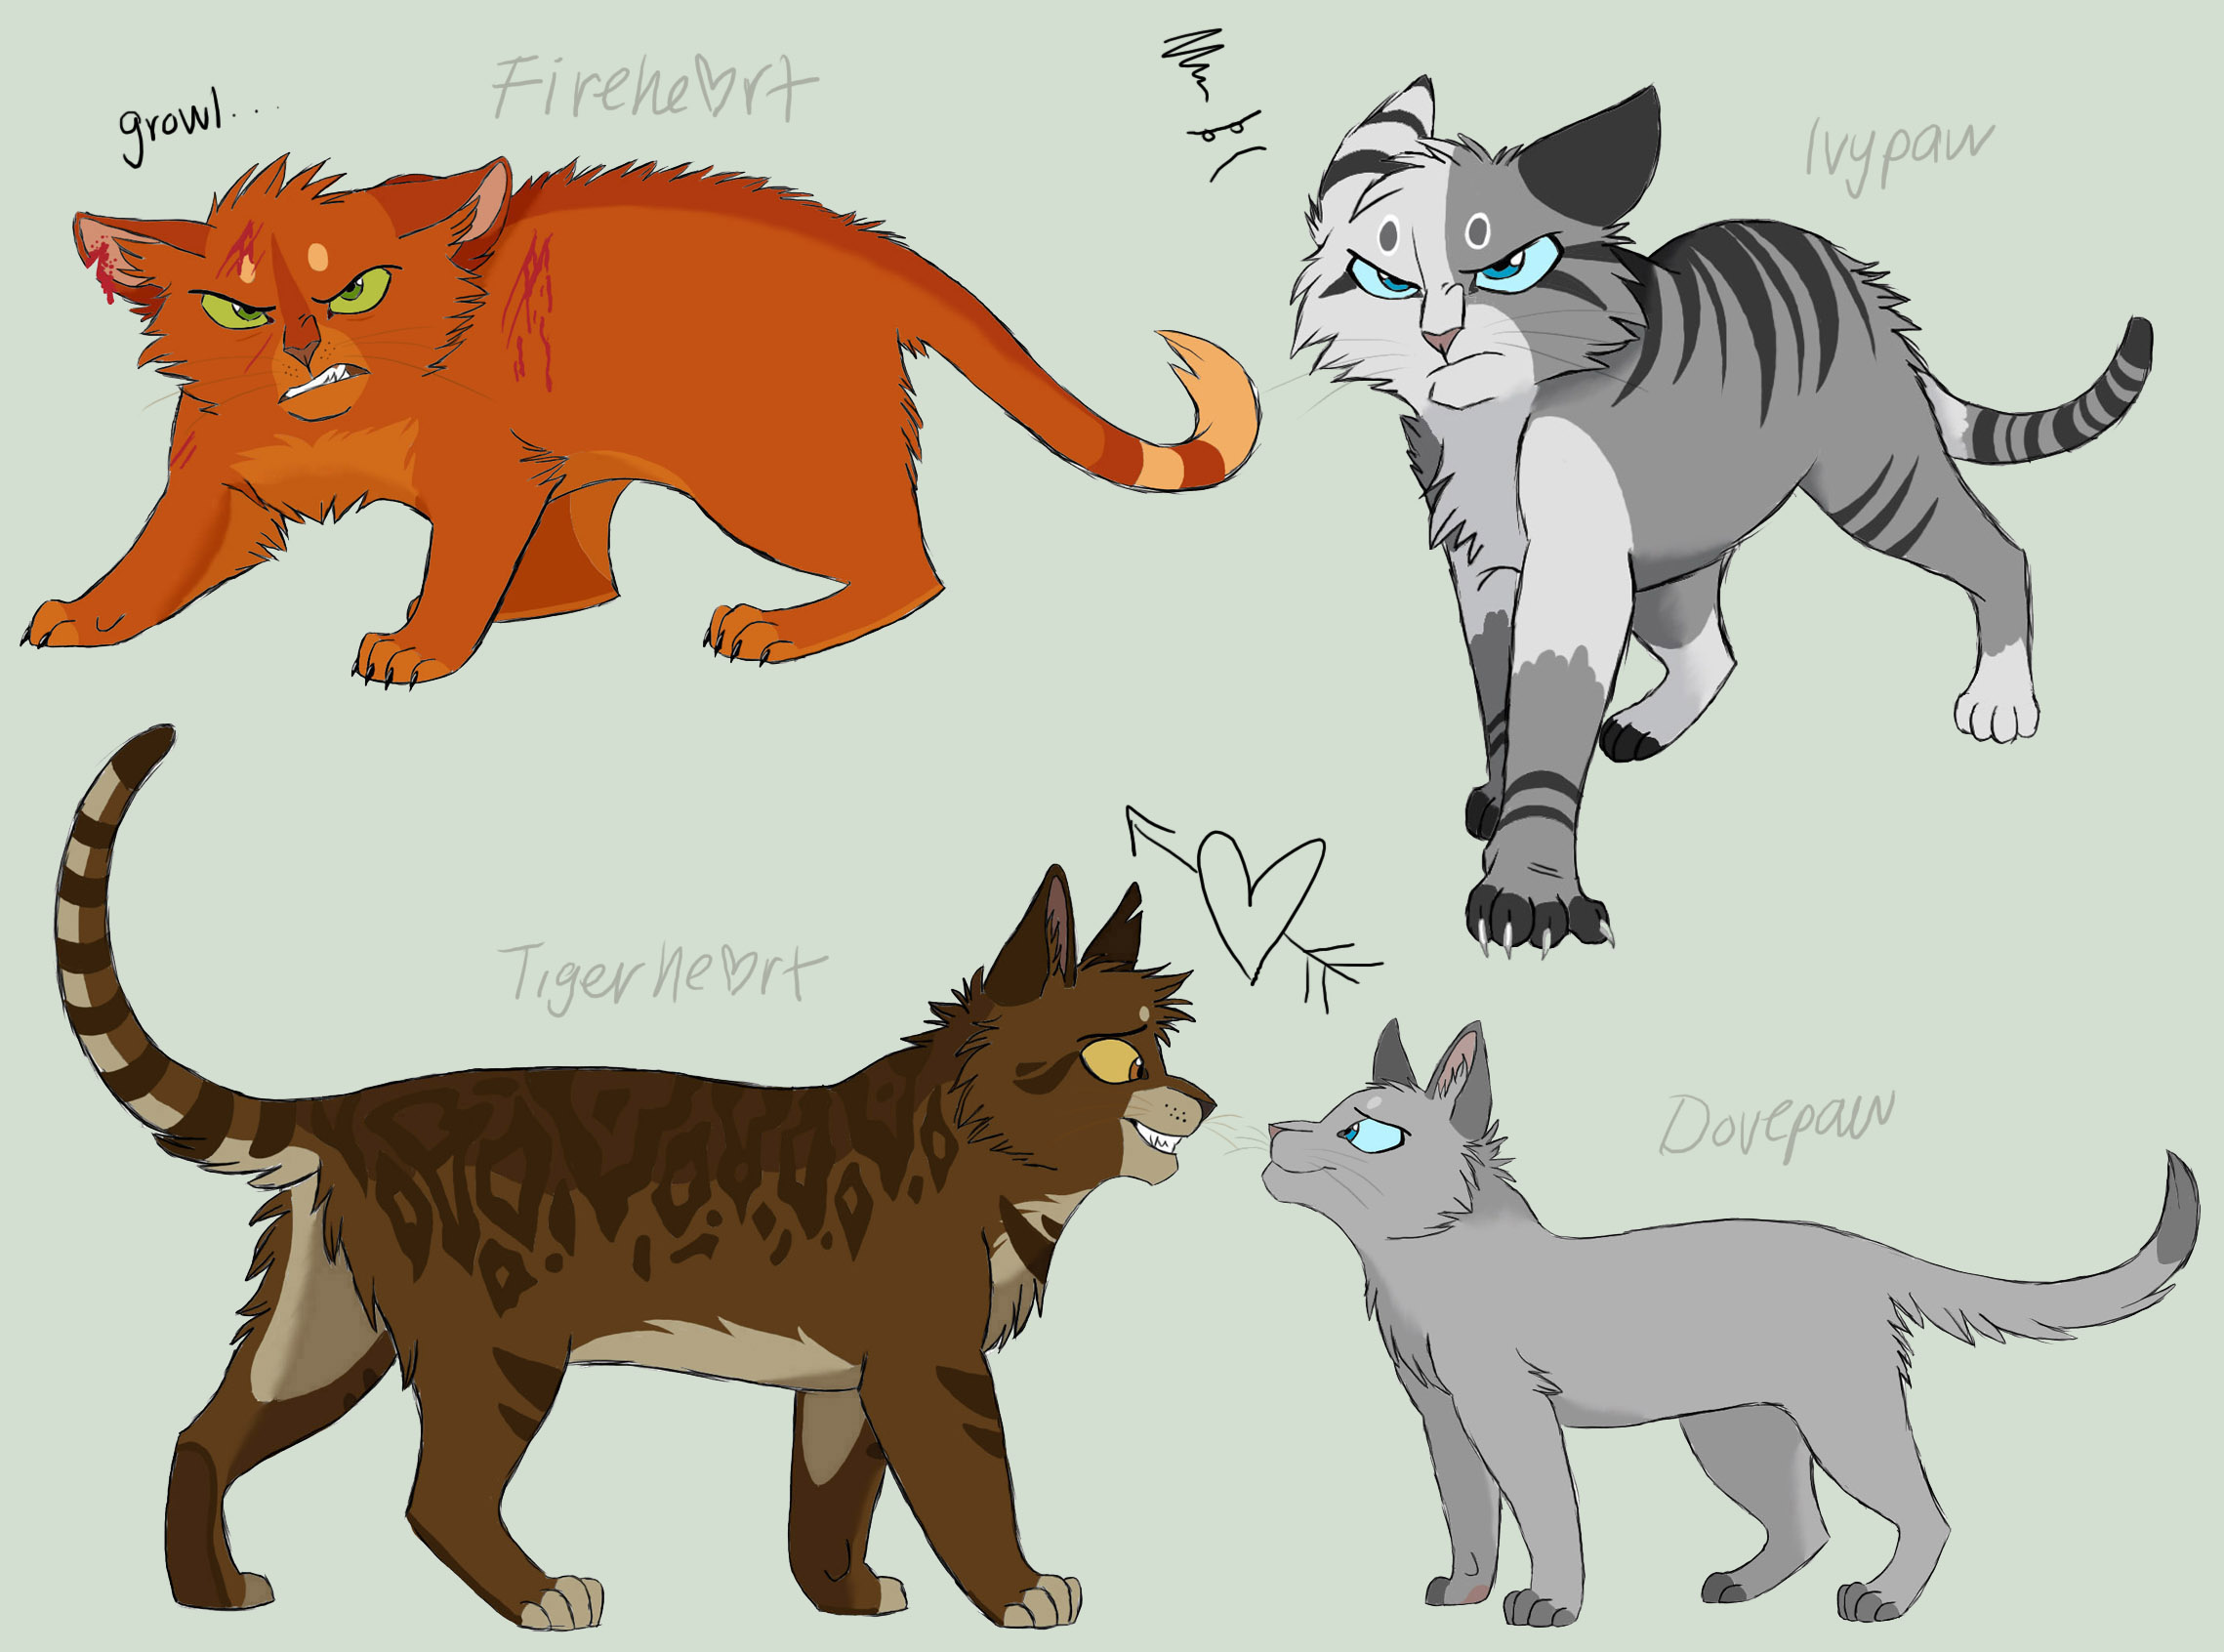 WARRIOR CATS Images Dovepaw And Ivypaw HD Wallpaper And